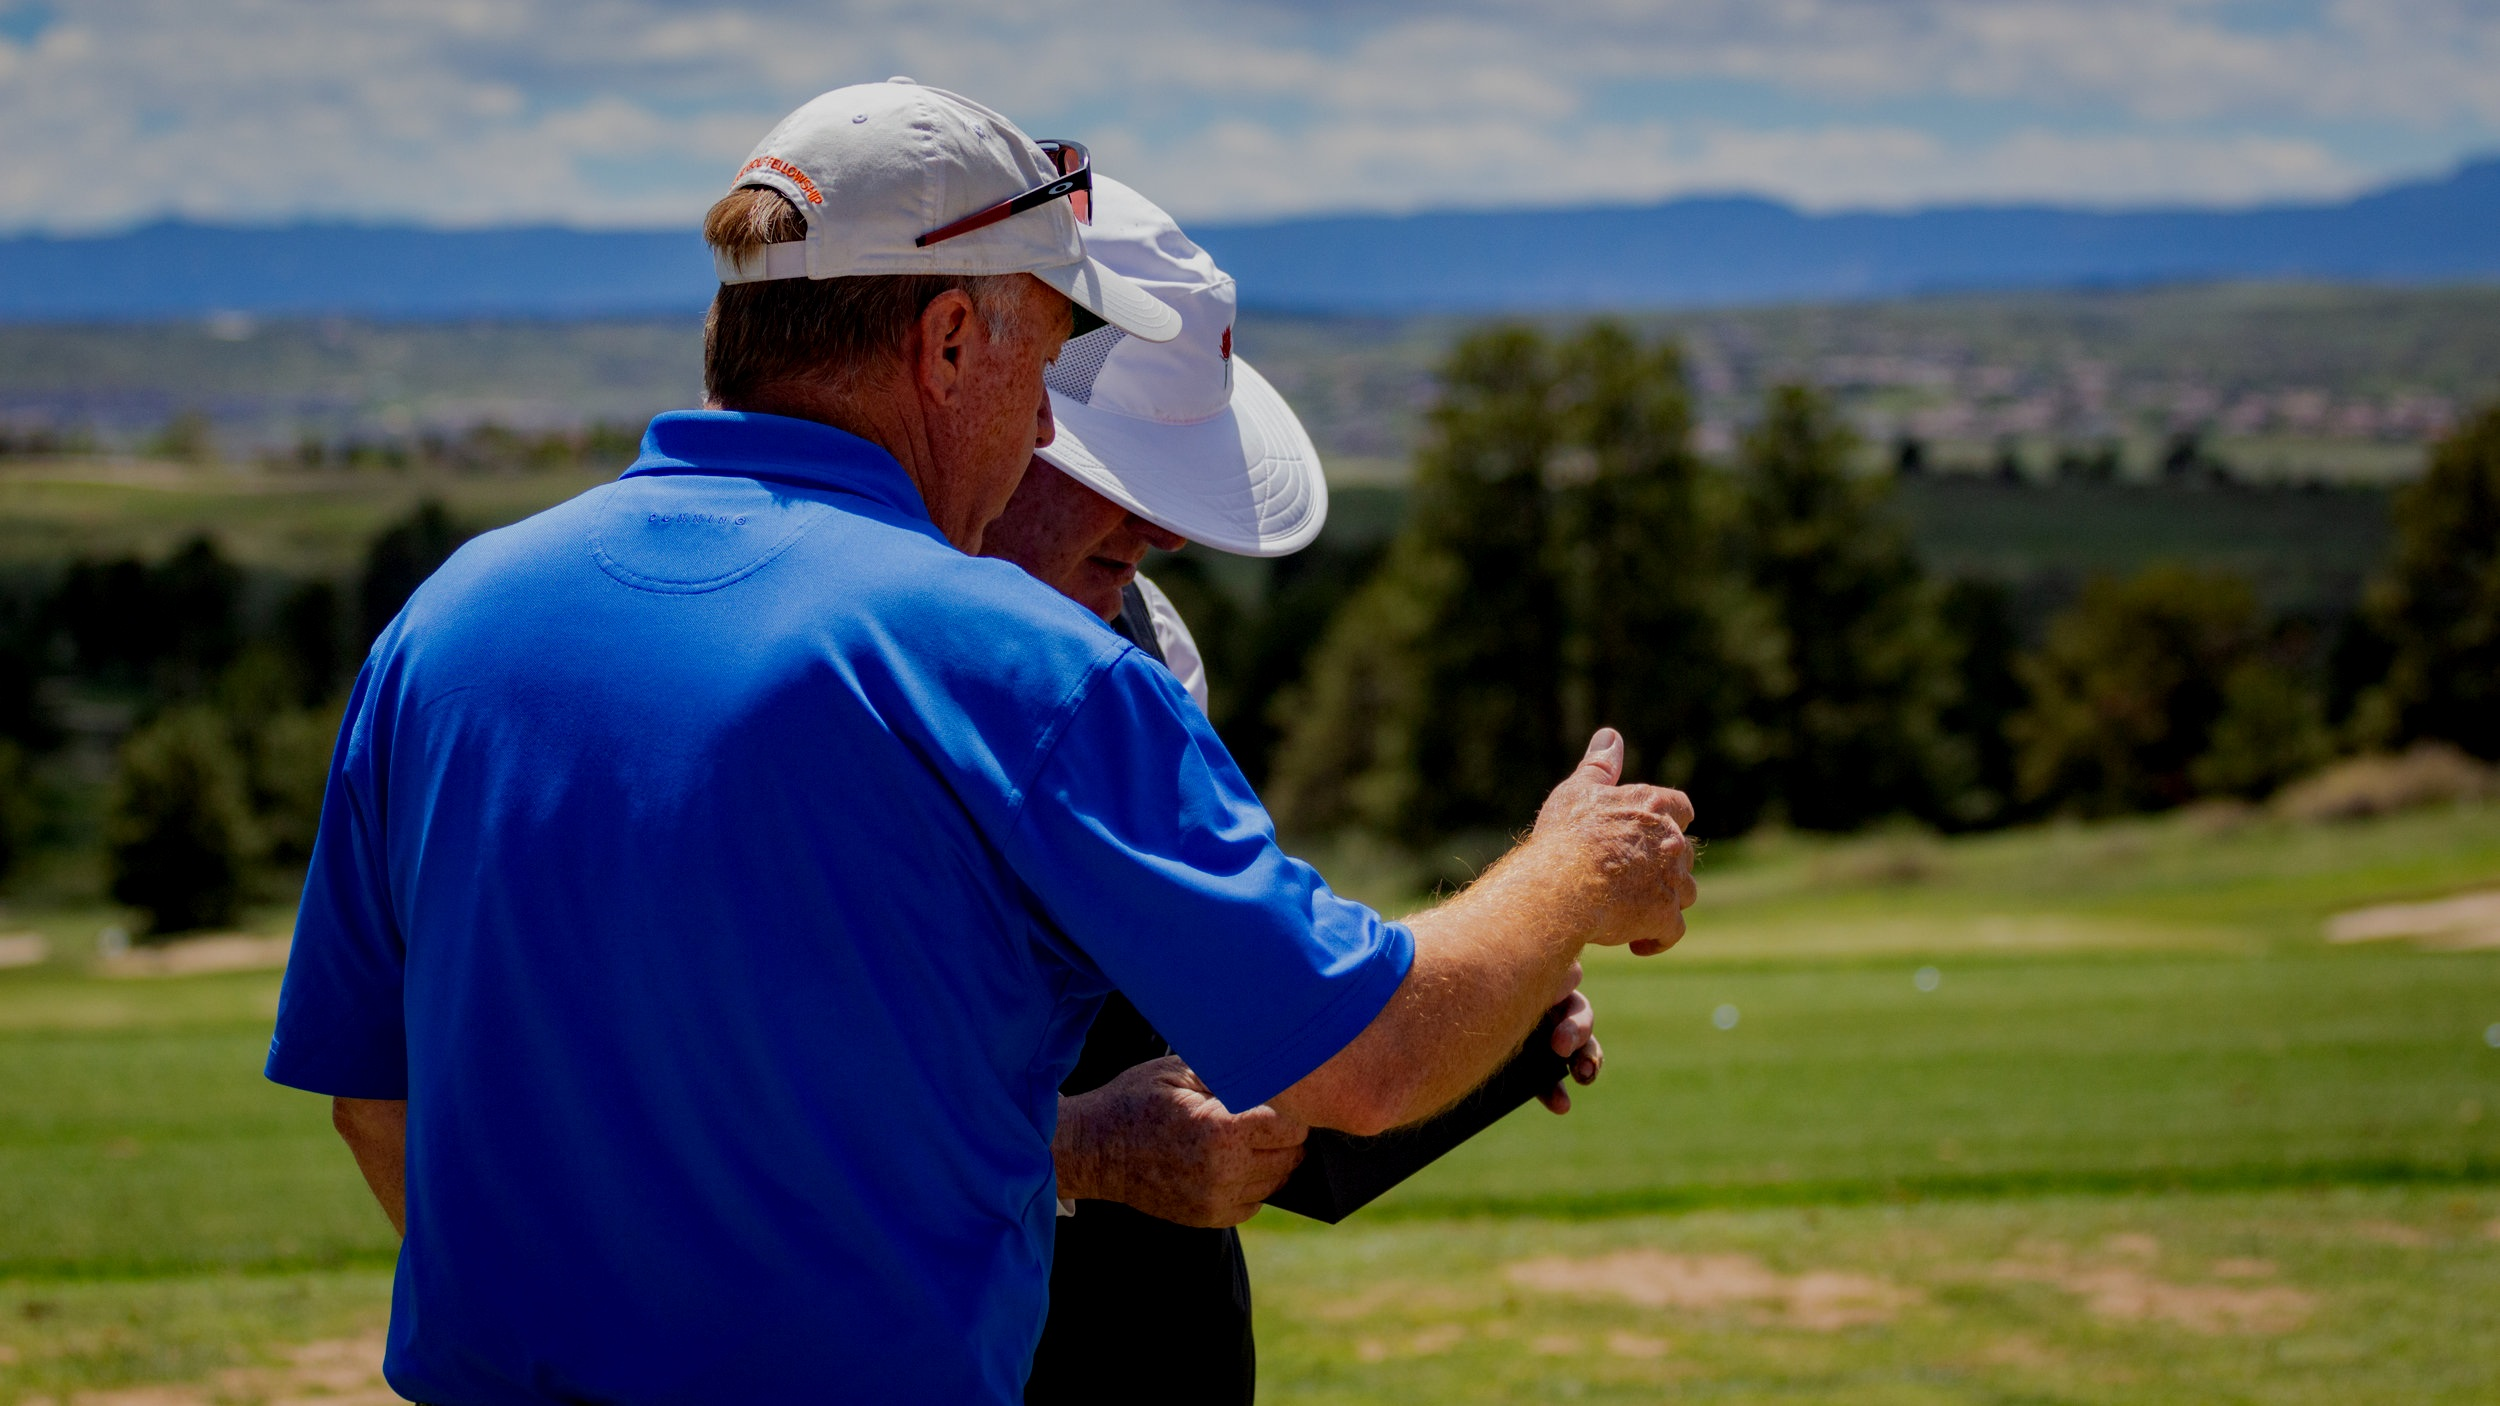 Golf Coaching - With 40+ years of experience under his belt, Stan is more than qualified to help you improve. With personal, private lessons, your game is guaranteed to improve.